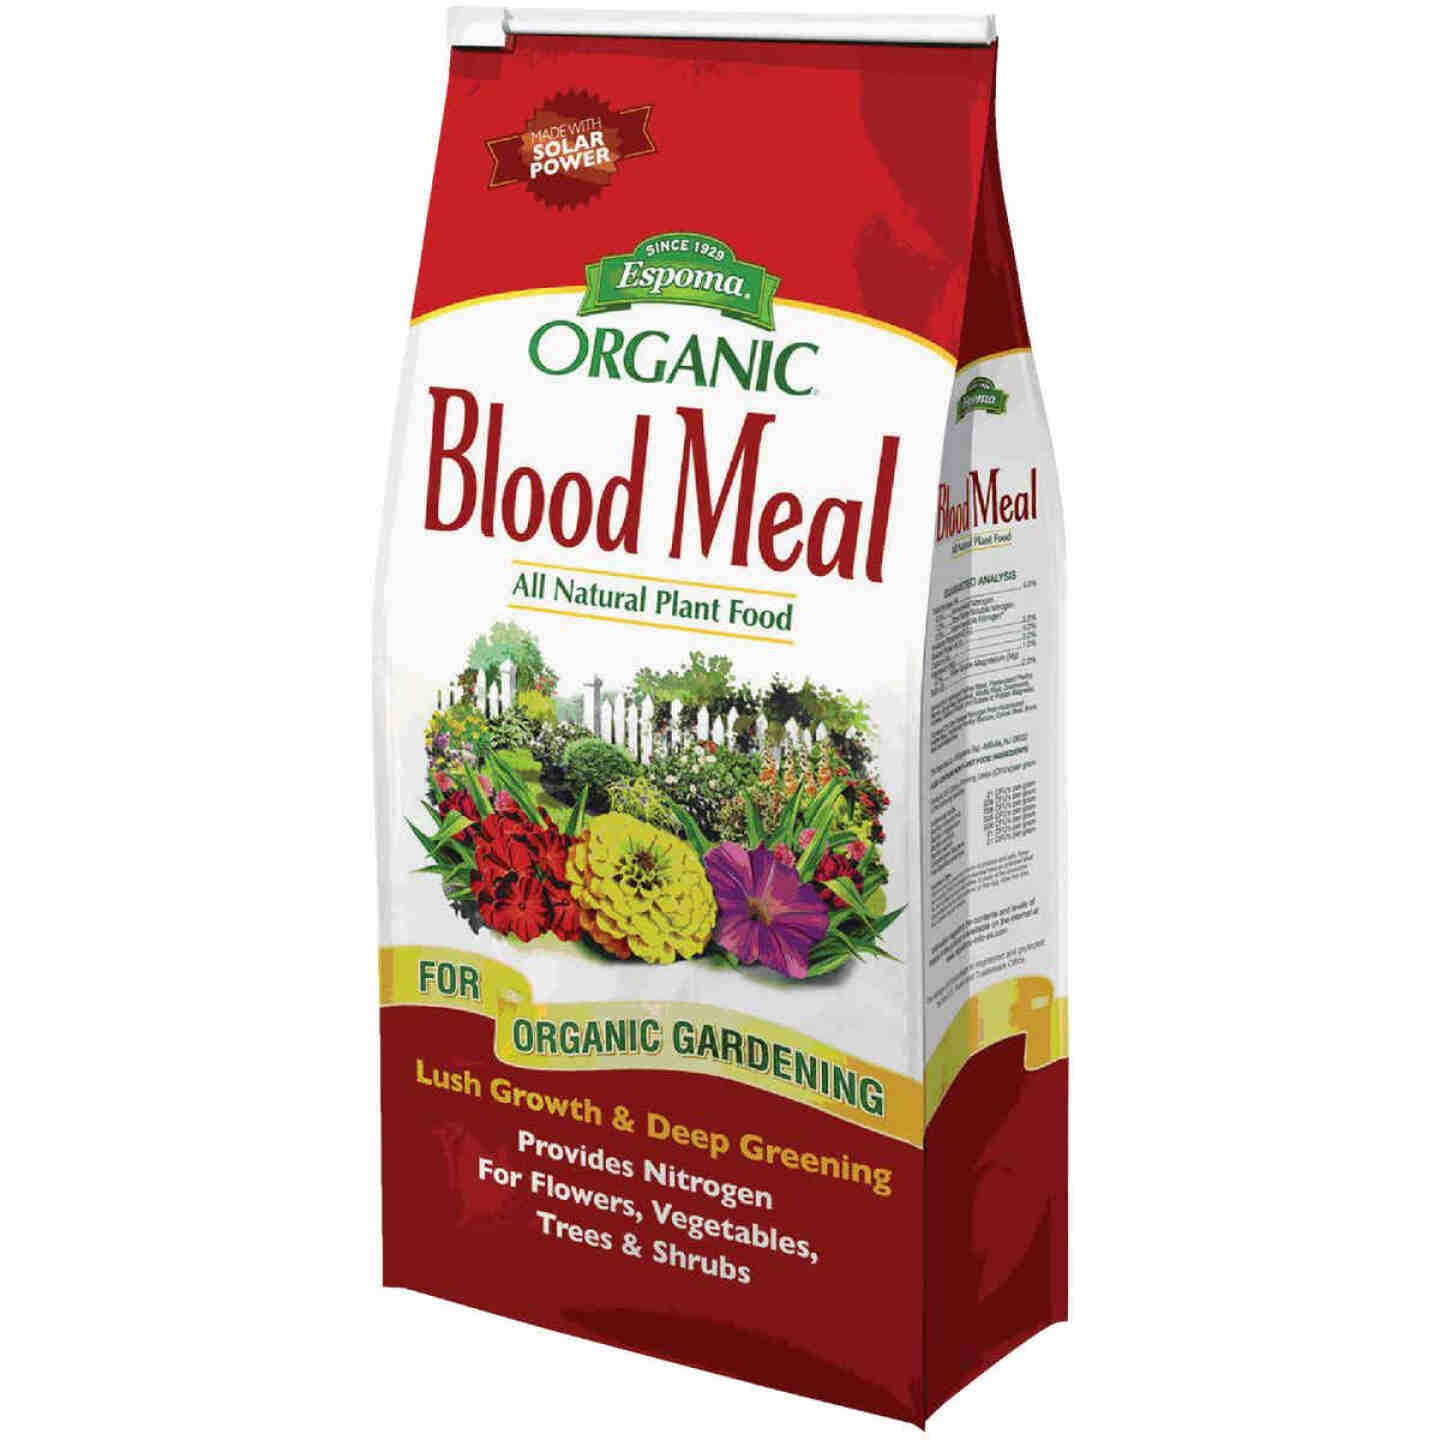 Espoma Organic 3-1/2 Lb. 12-0-0 Blood Meal Image 1